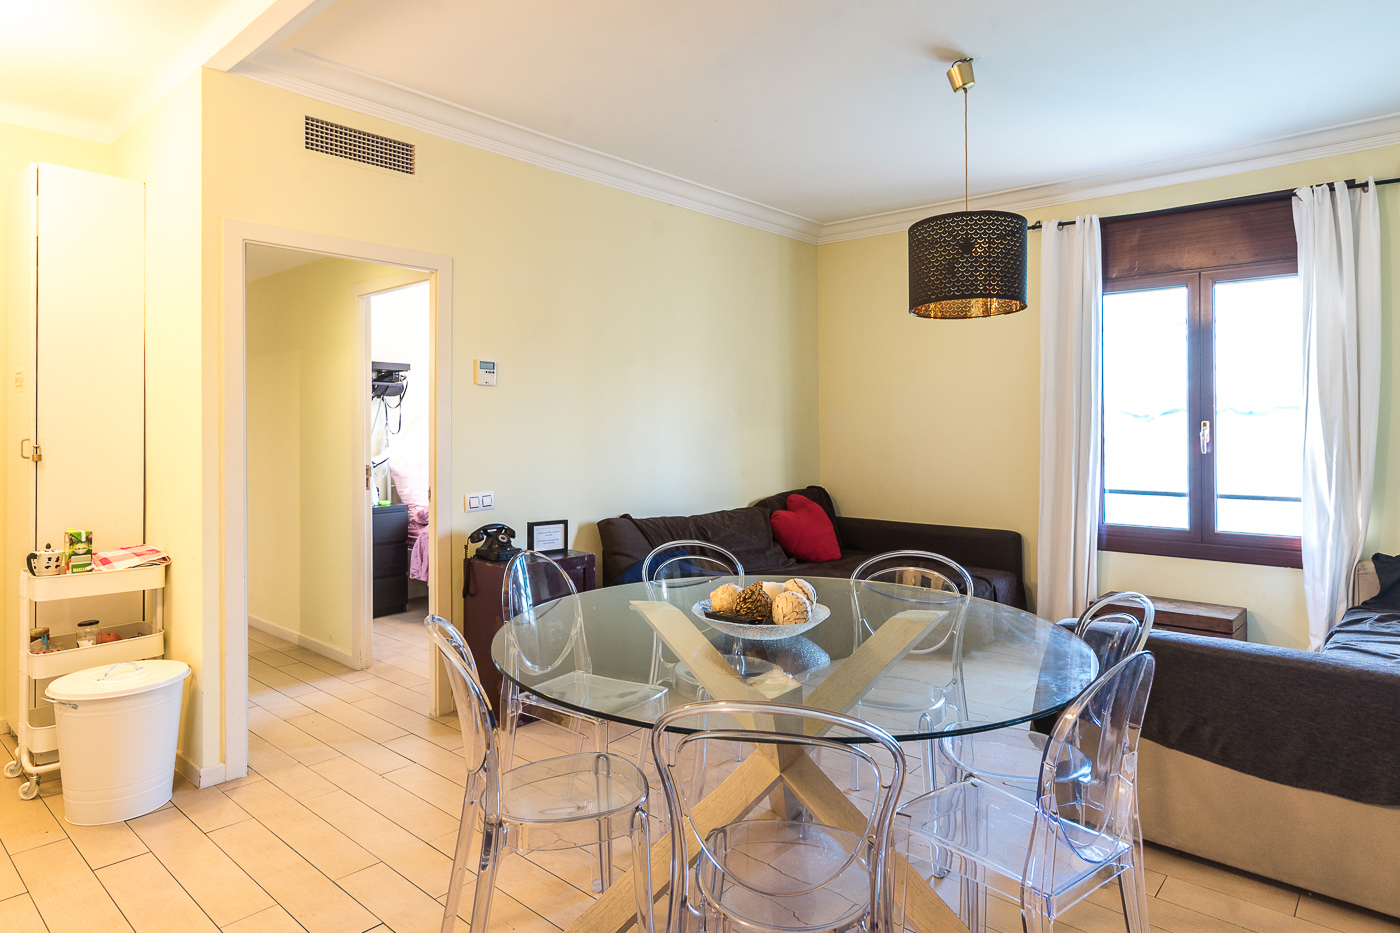 Piso en Barcelona - eixample. 3 bedrooms. For sale: 525.000 €.